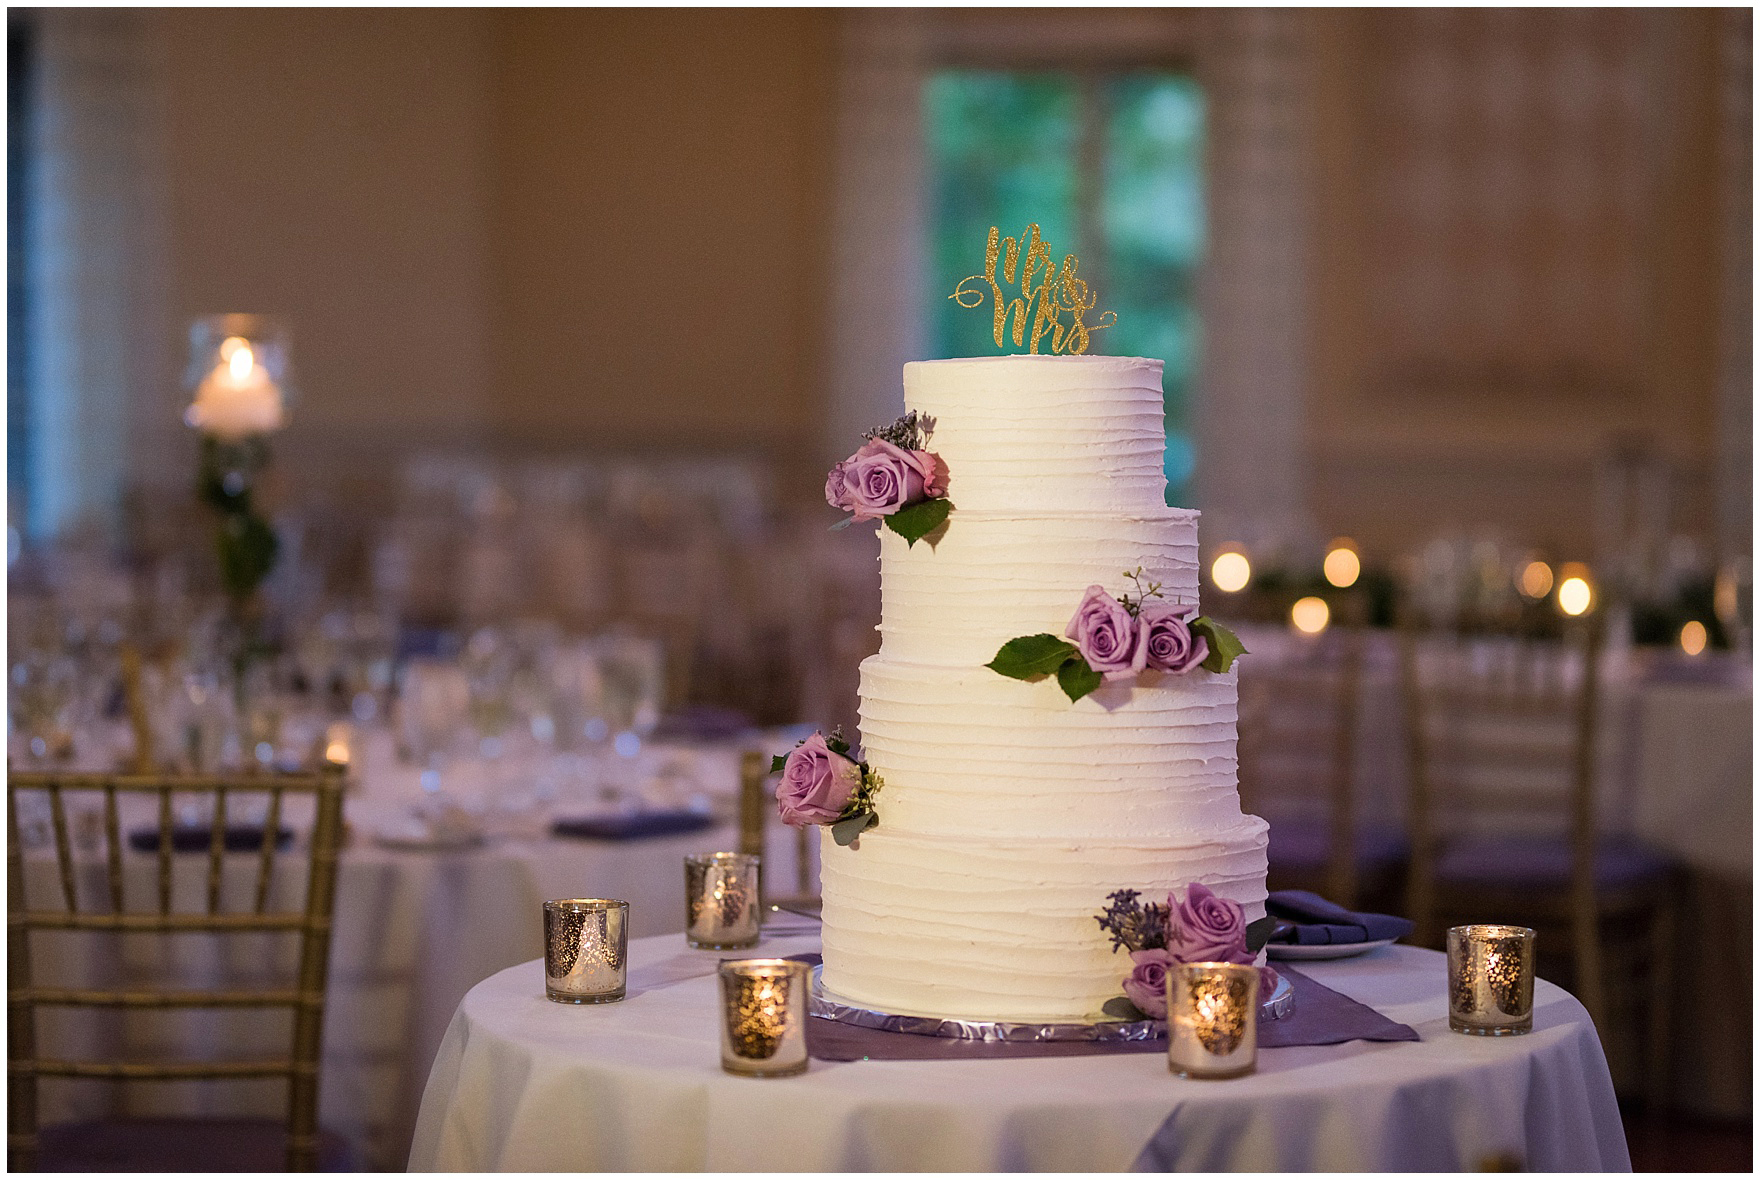 Details of a tiered wedding cake with lavender roses for a Glen Club Glenview Illinois wedding.